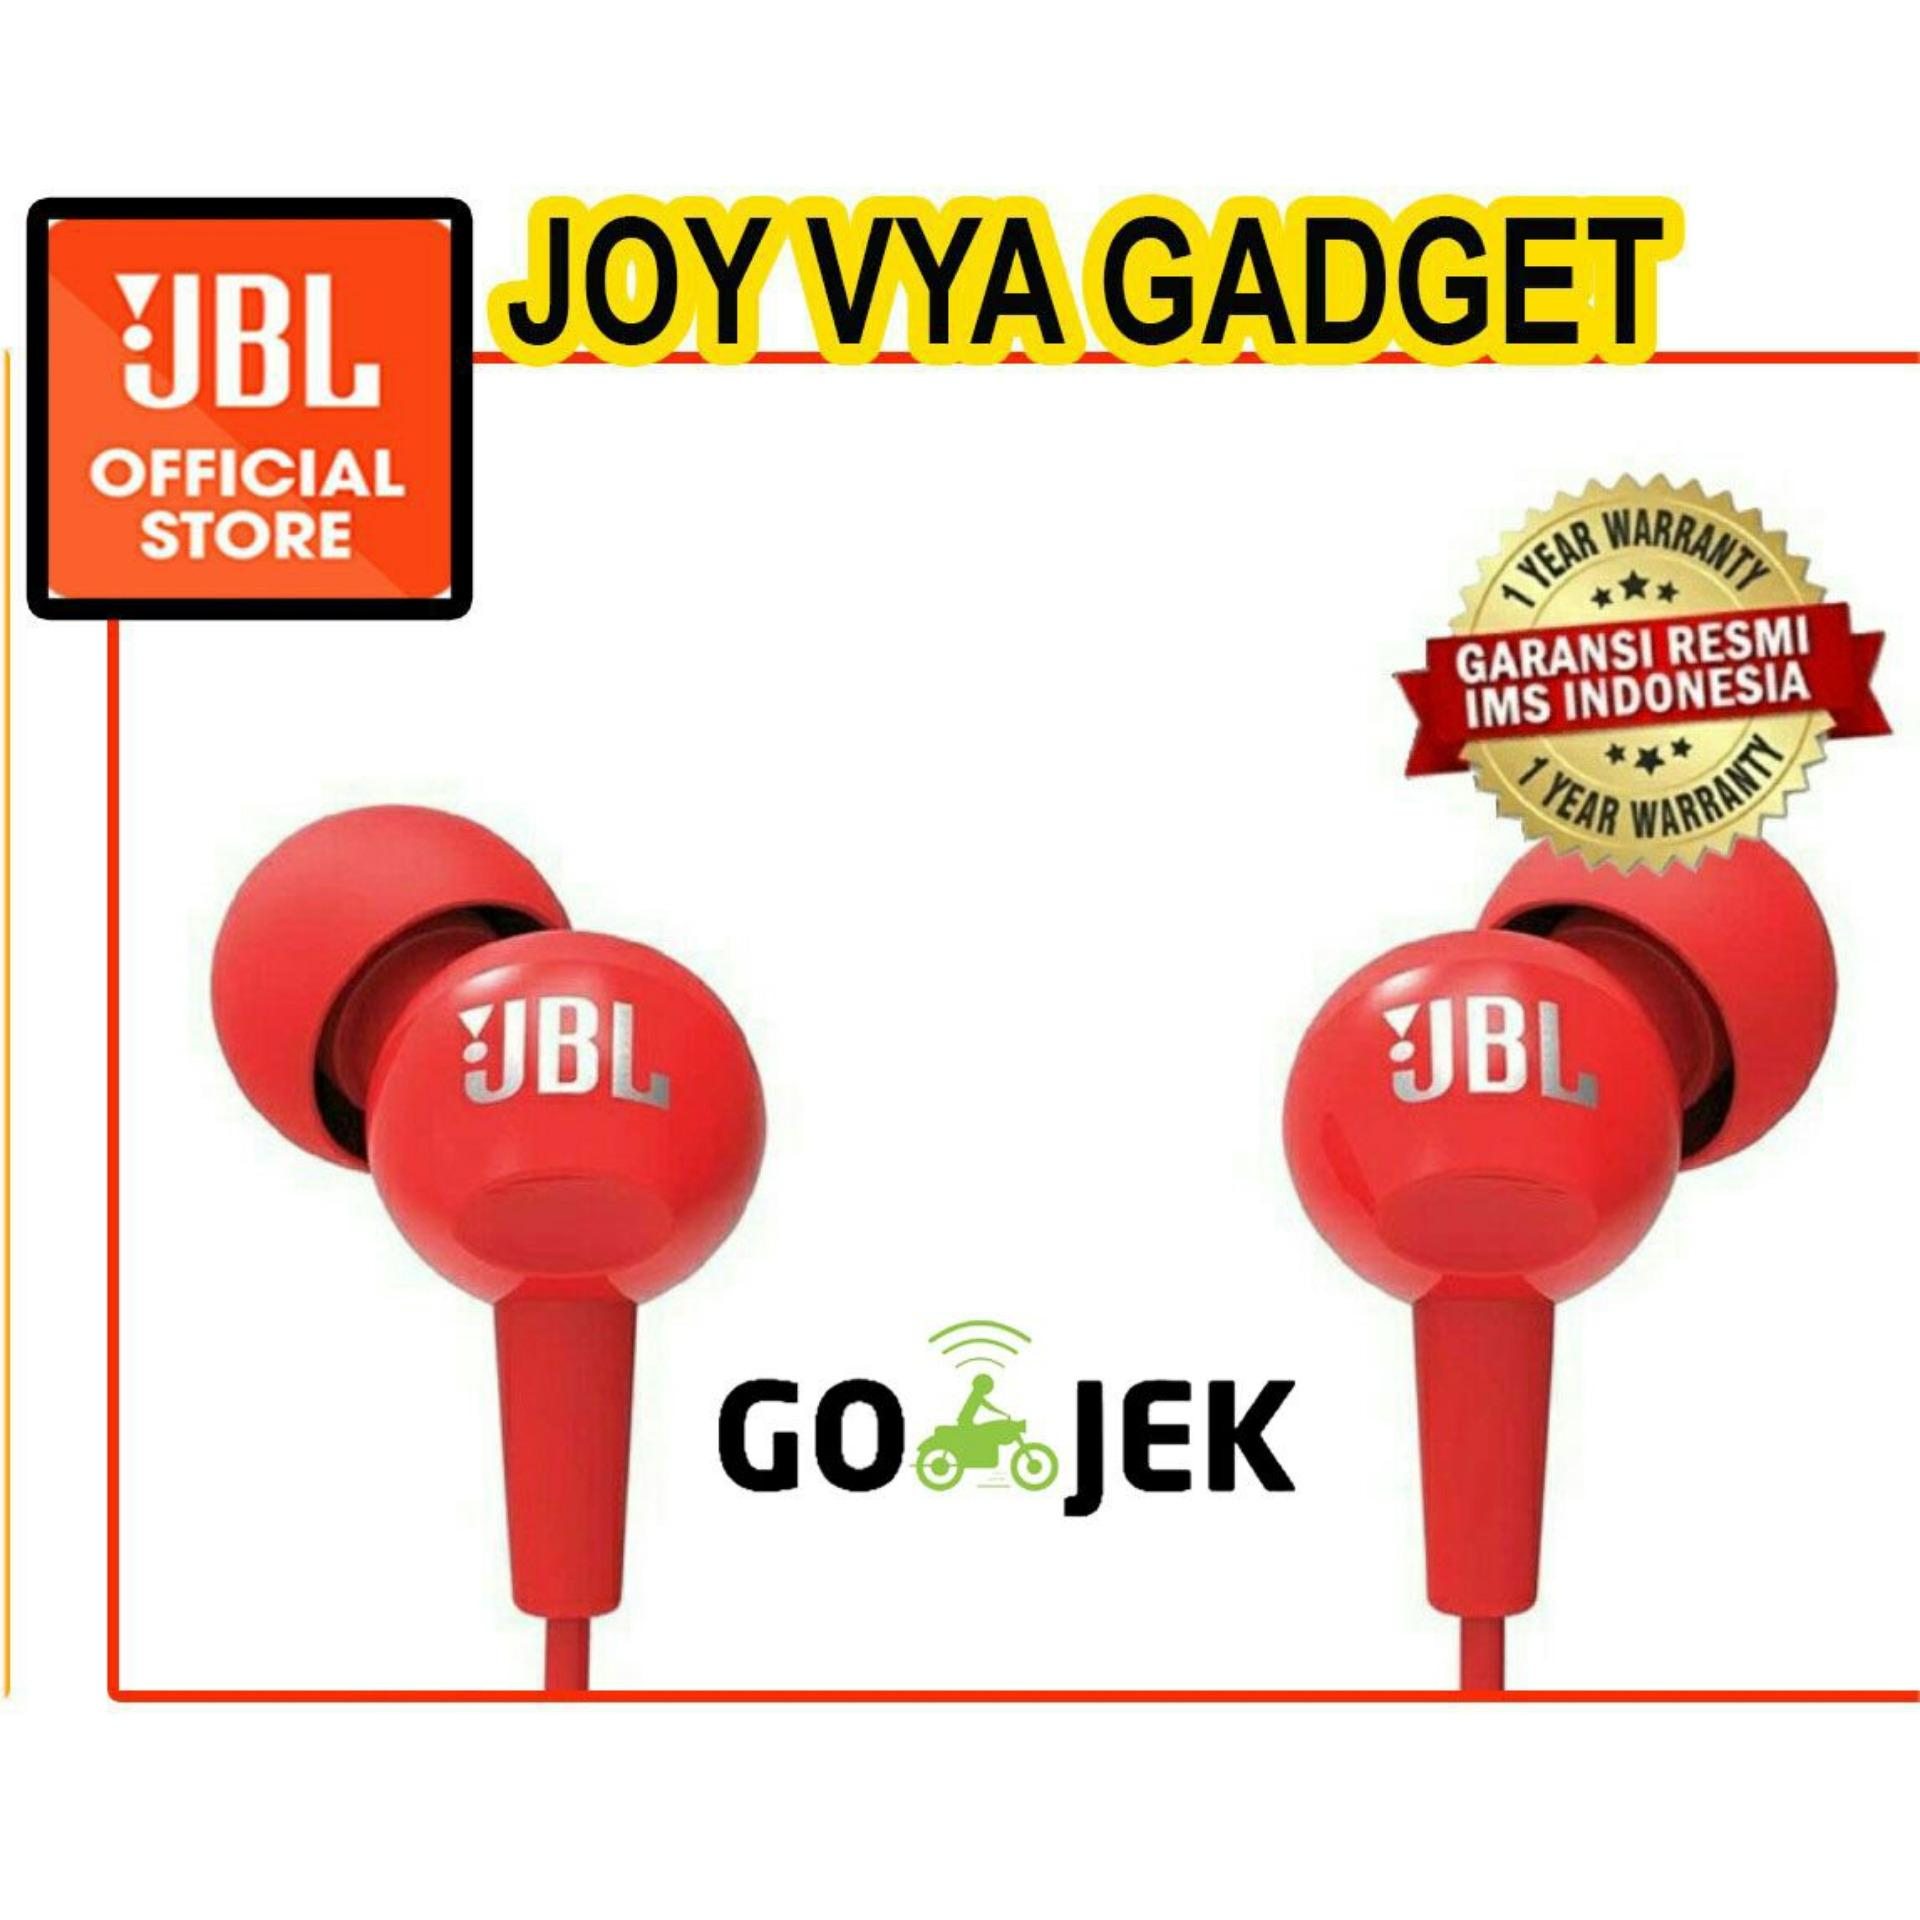 Jbl C100si In Ear Headphone With Mic Original Garansi Resmi Ims T110 Pure Bass Microphone And Flat Cable Earphone Bkn